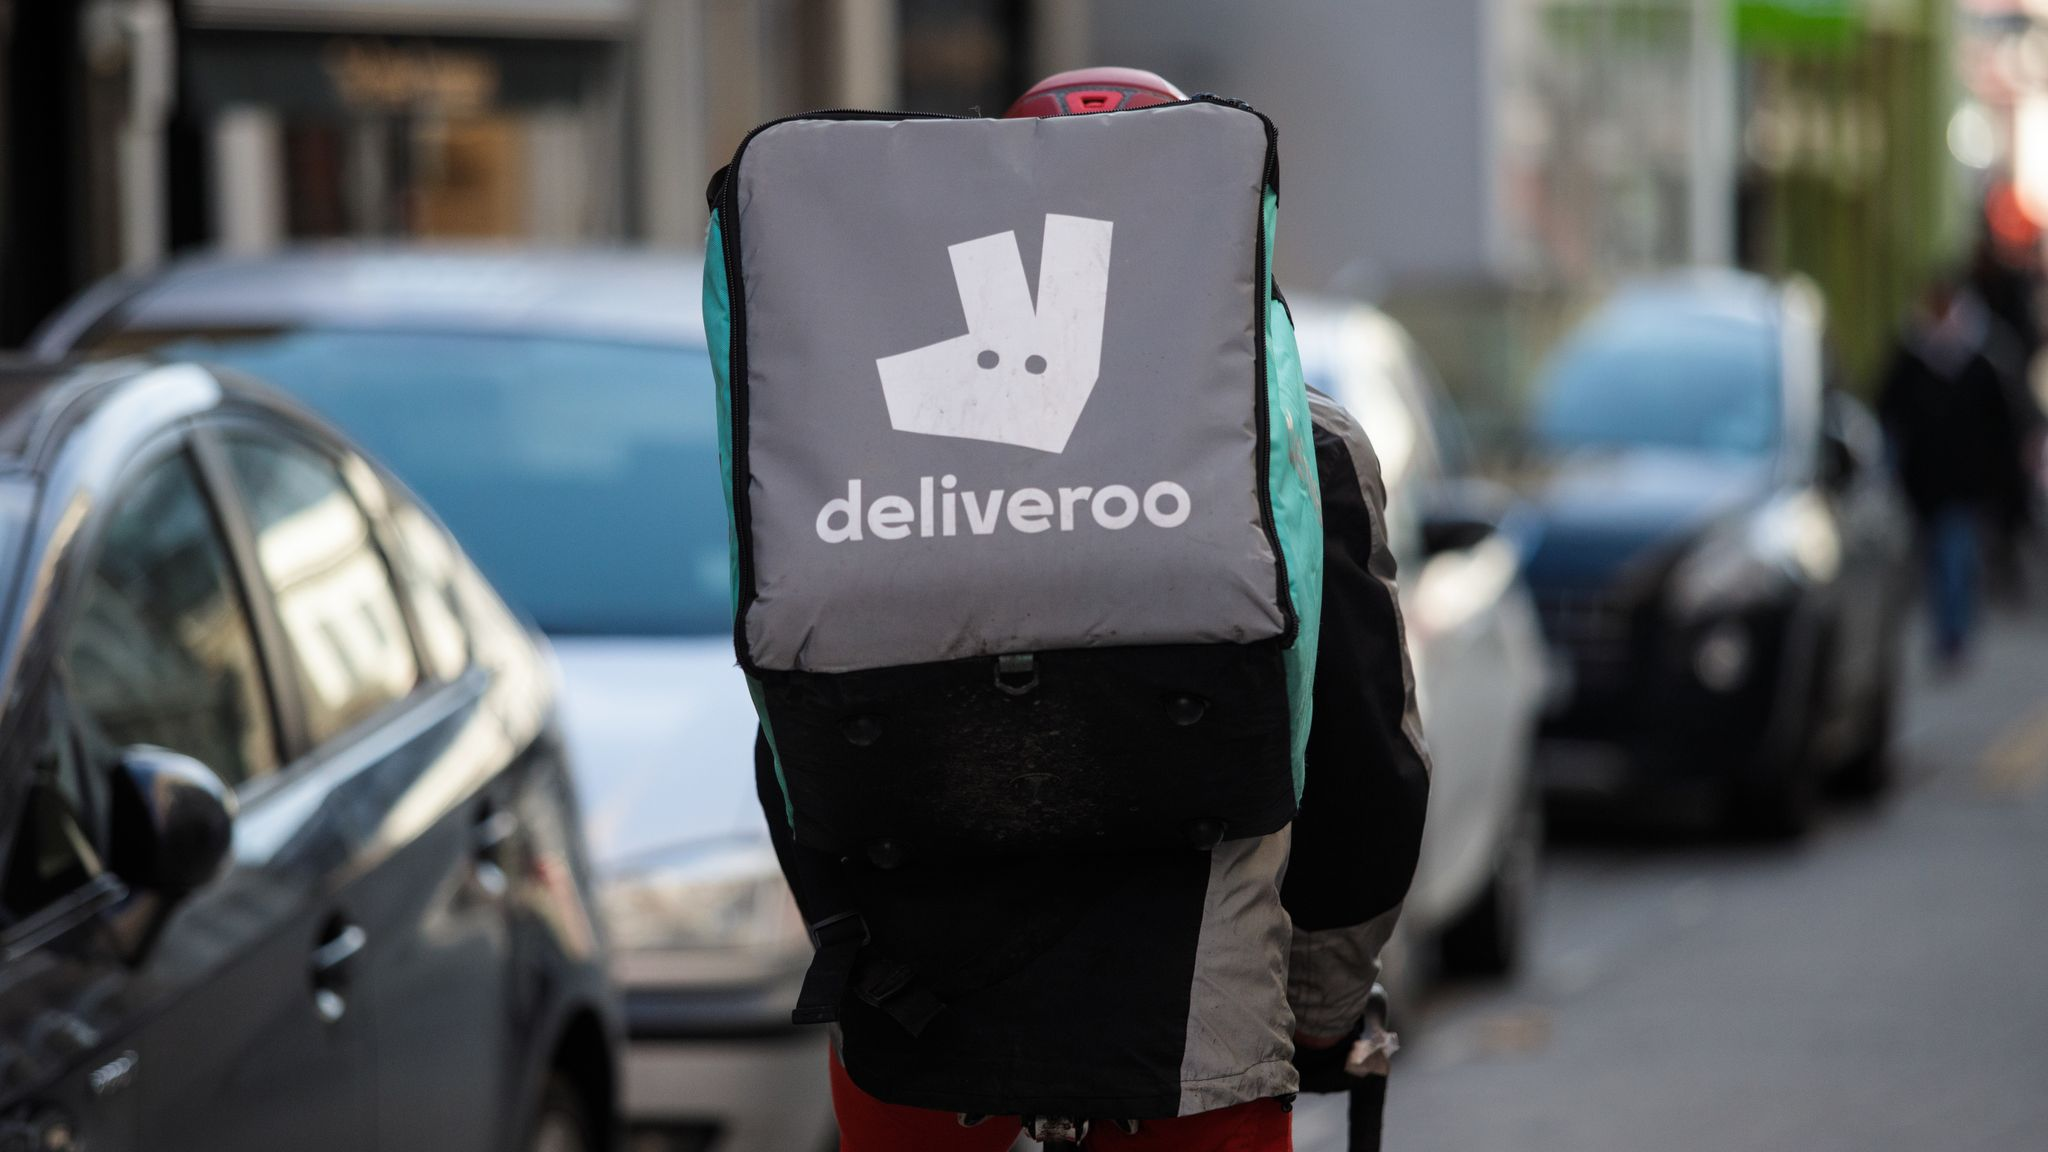 Deliveroo pencils in 8 March for IPO